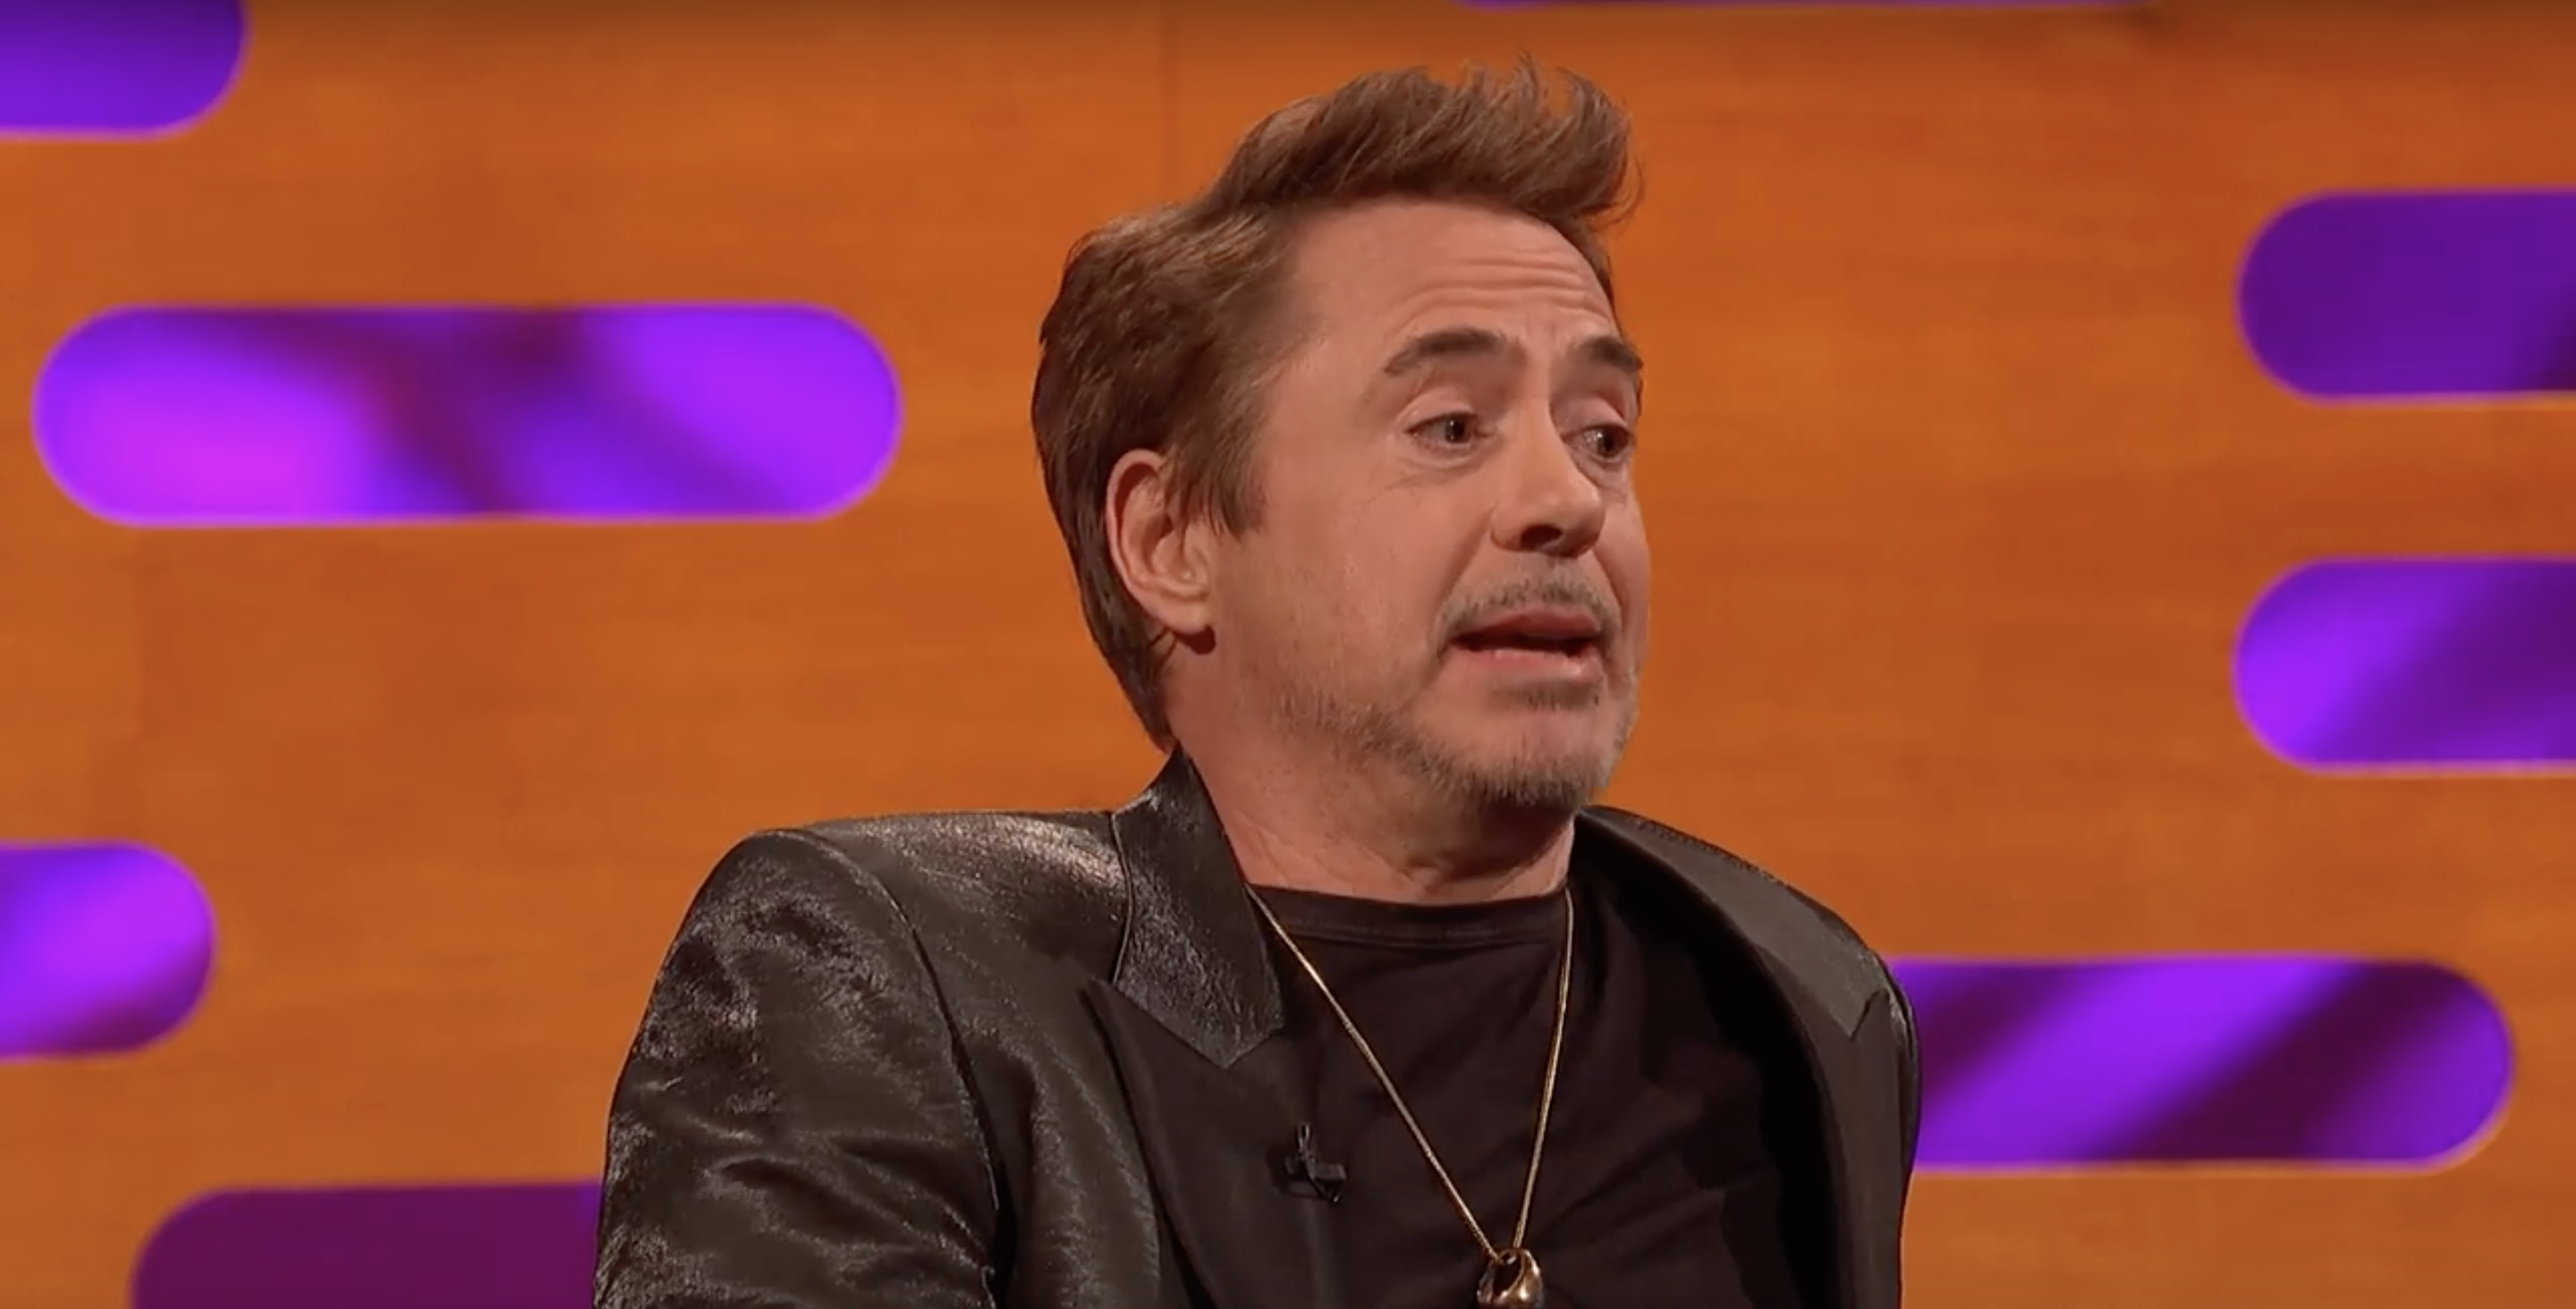 Marvel's Robert Downey Jr reveals he's basically become Dr Dolittle in real life now too